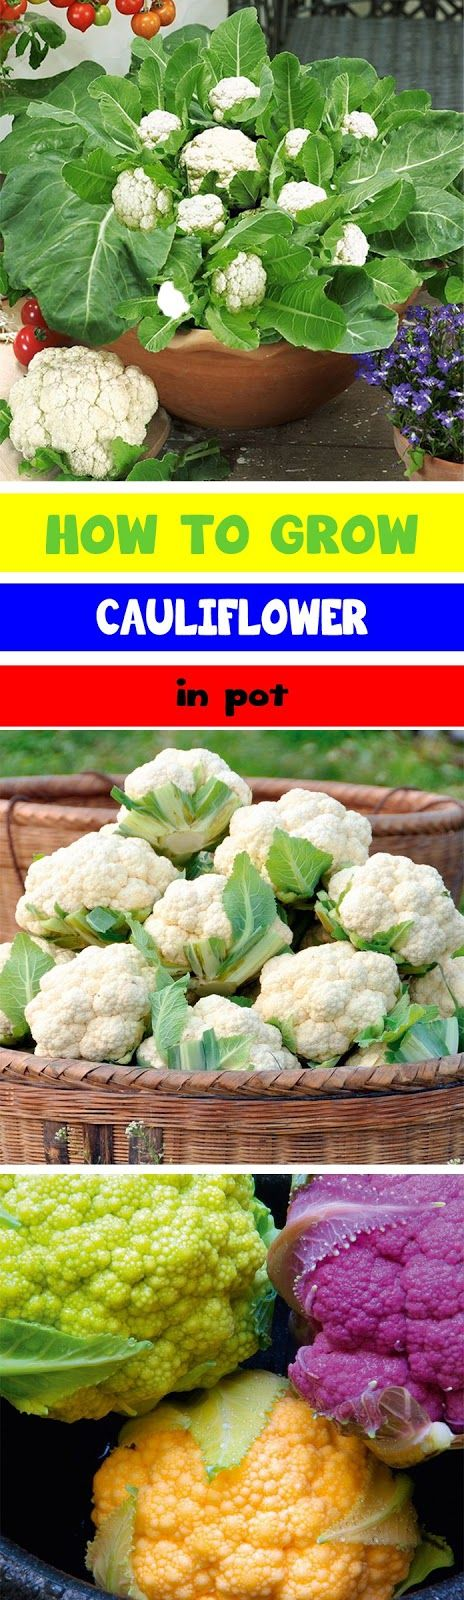 Cauliflower Plant Care When the head or flower (curd) of cauliflower becomes 2-3 inches in diameter (this is unnecessary for colored varieties), cover it with the inner leaves by breaking or tying them over the head.